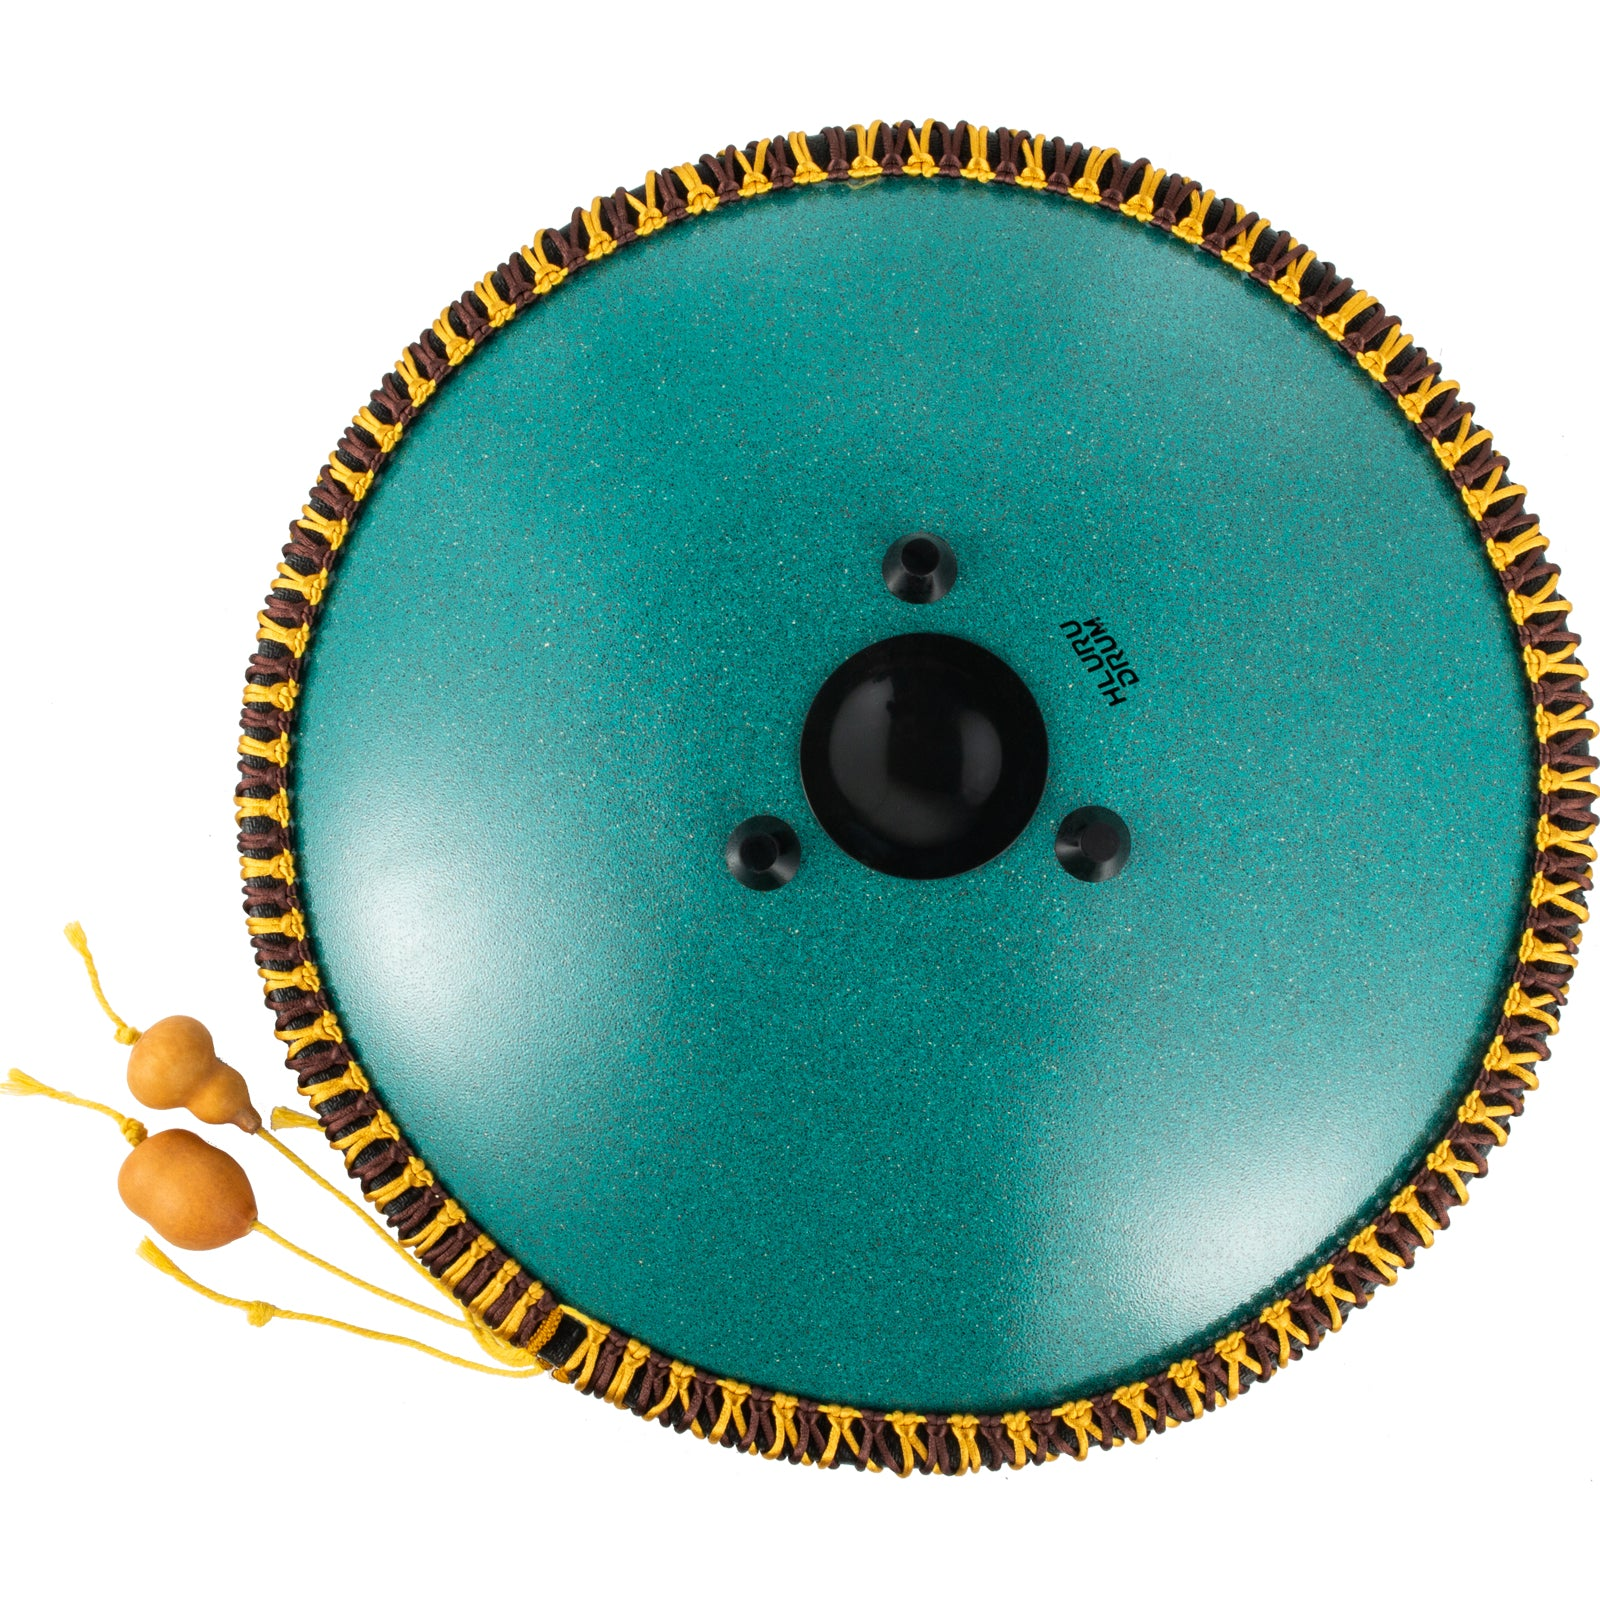 Tongue Drum 14note Dish Shape Drum 14 Inch Dia. W/ Rope Decoration Mineral Green